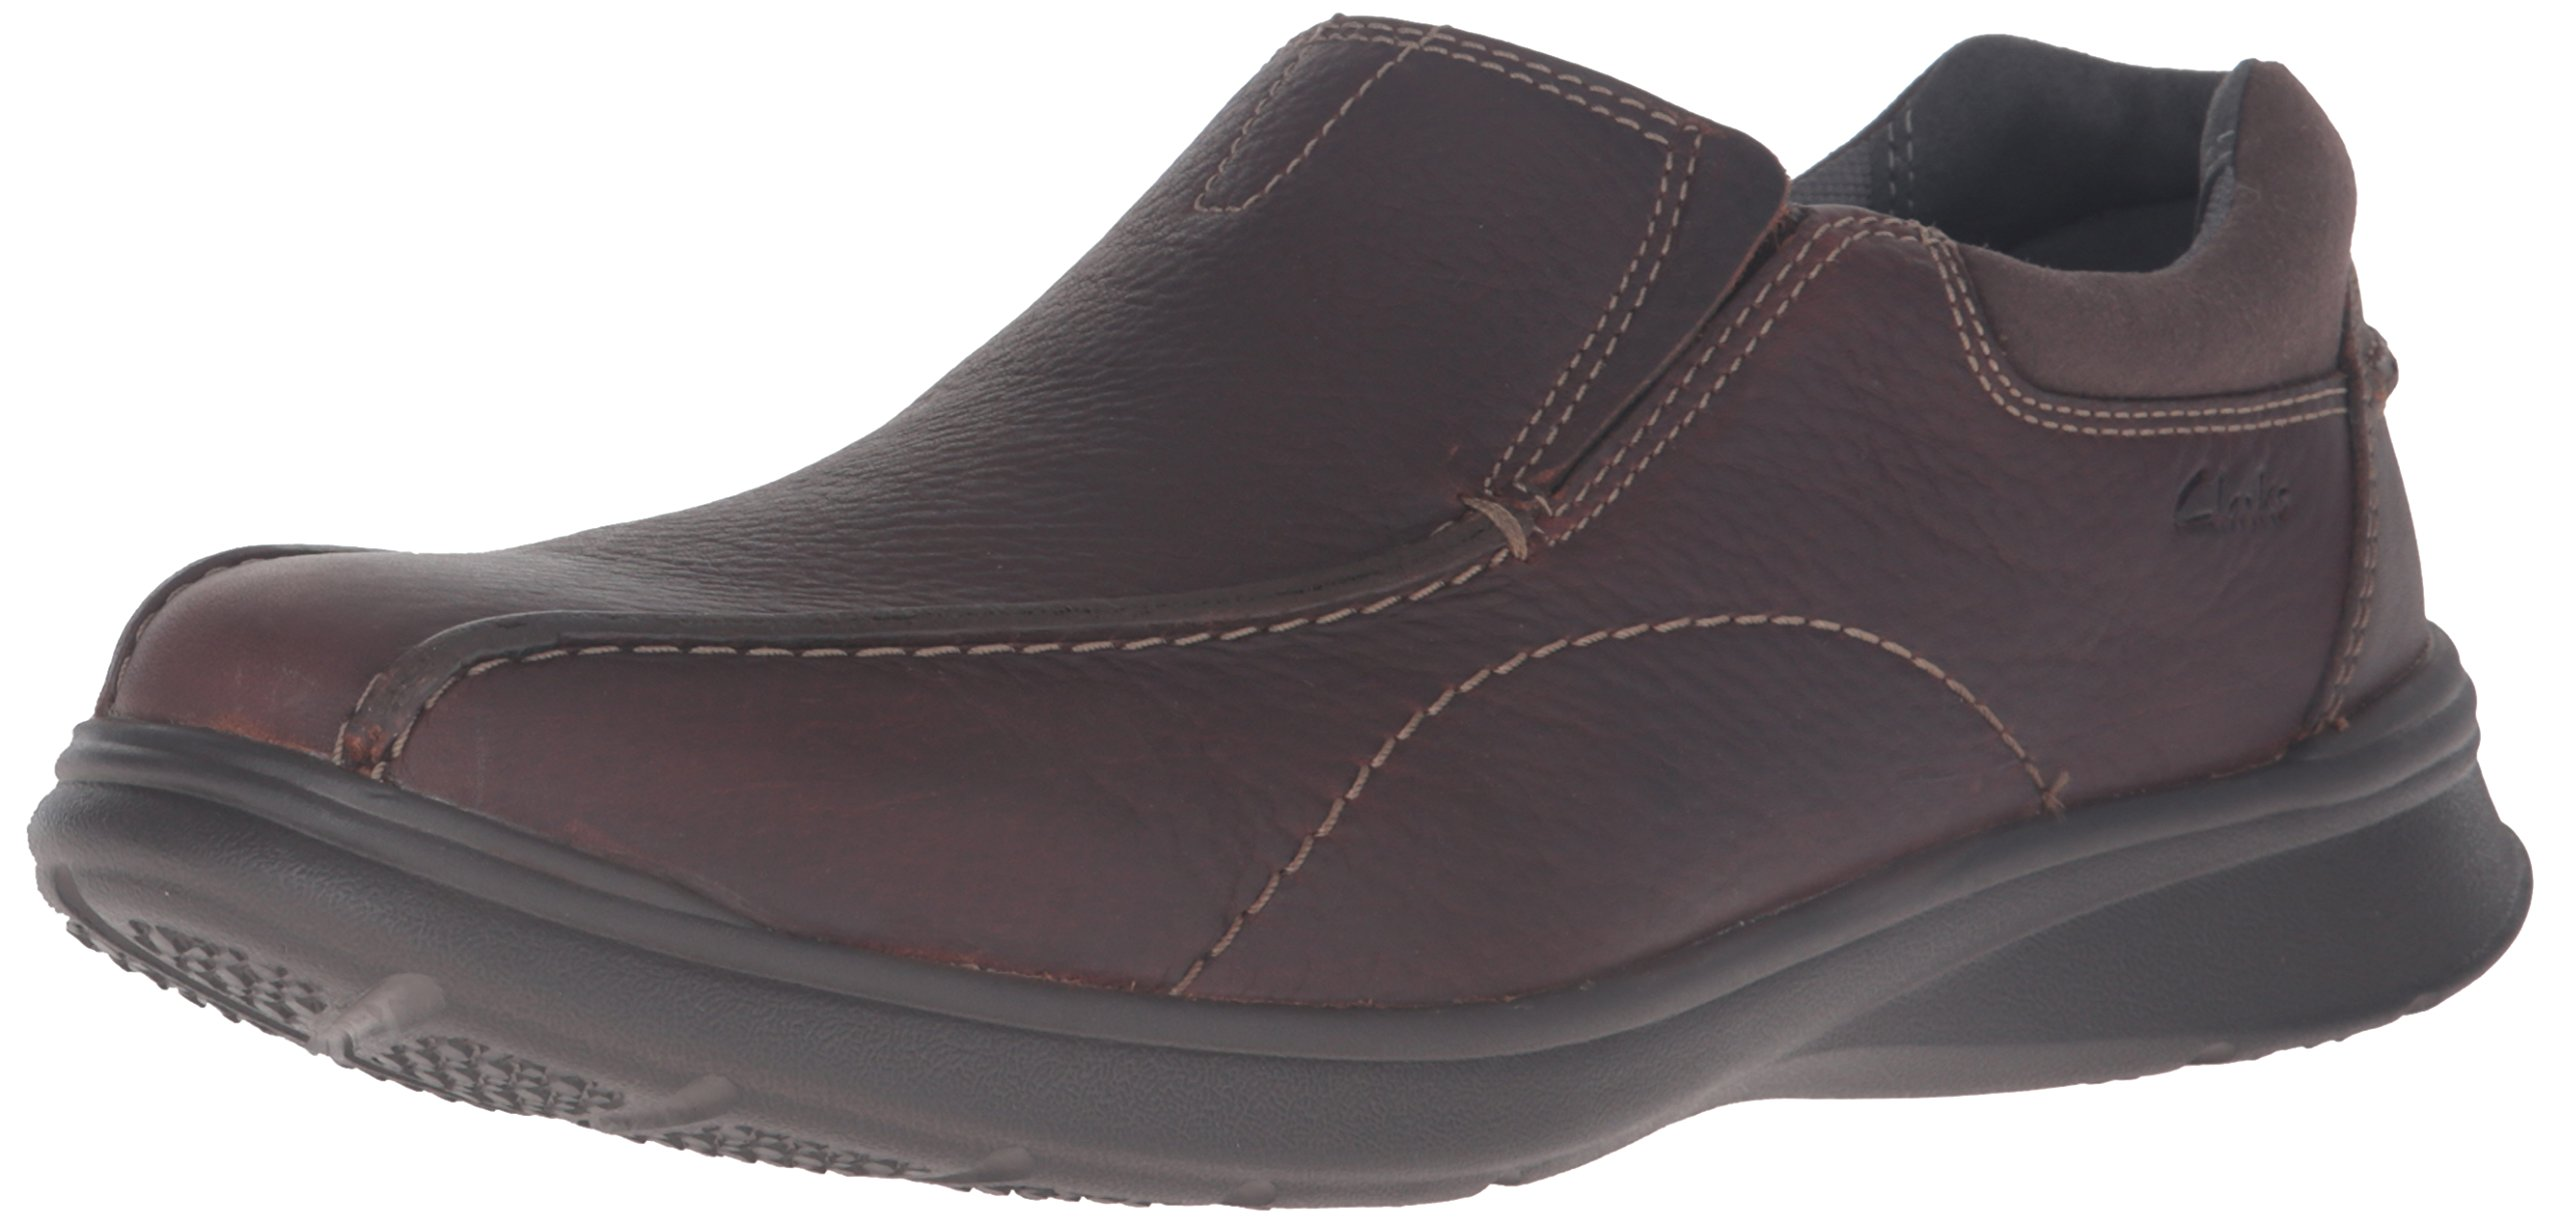 Cotrell Step Slip-On Loafer, Brown Oily